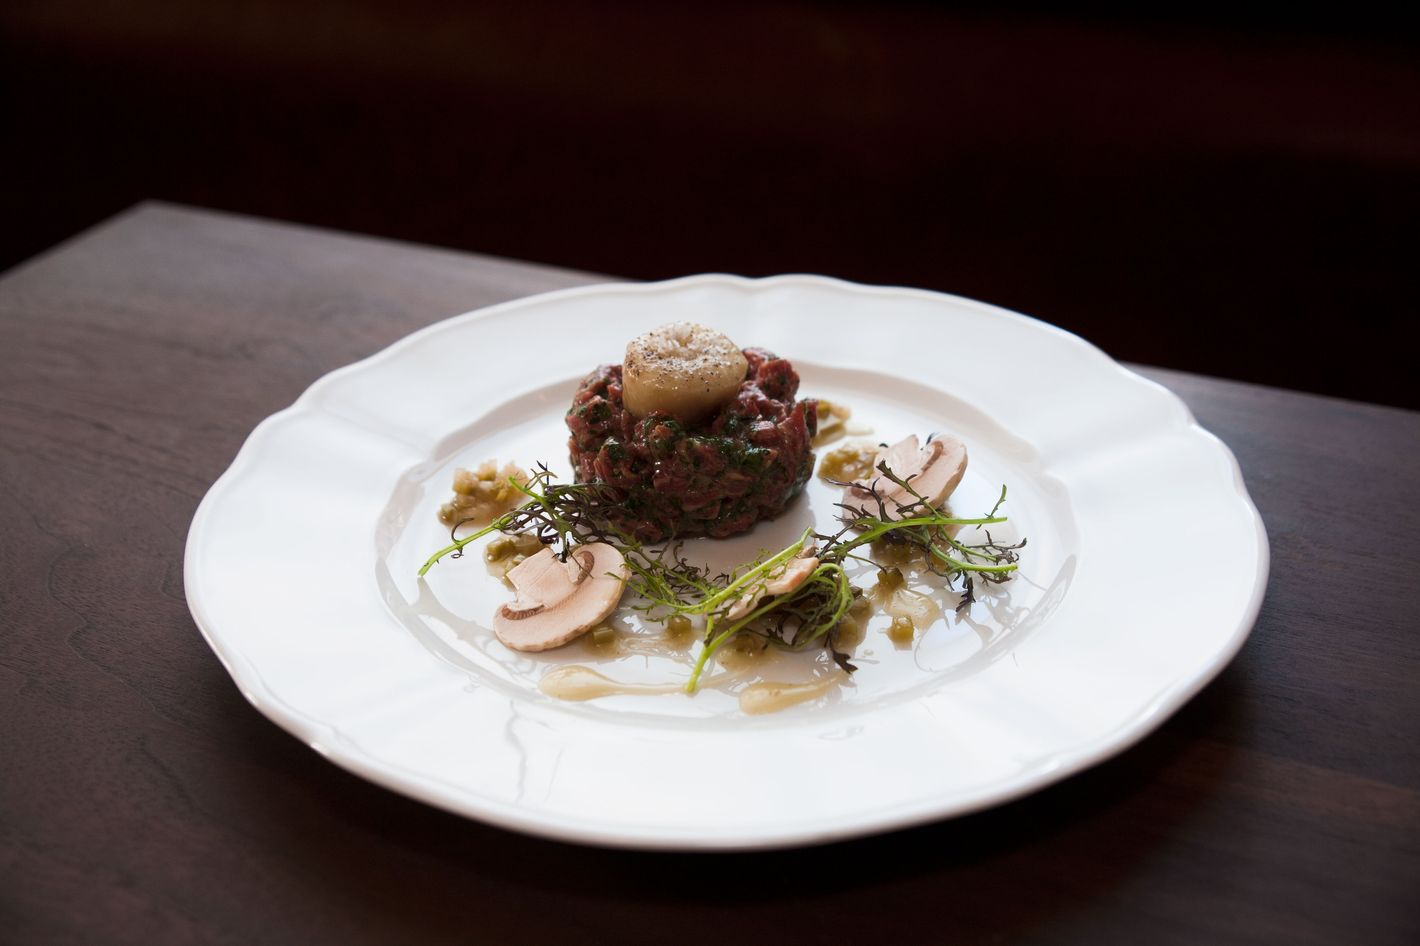 Beef tartare with poached marrow.